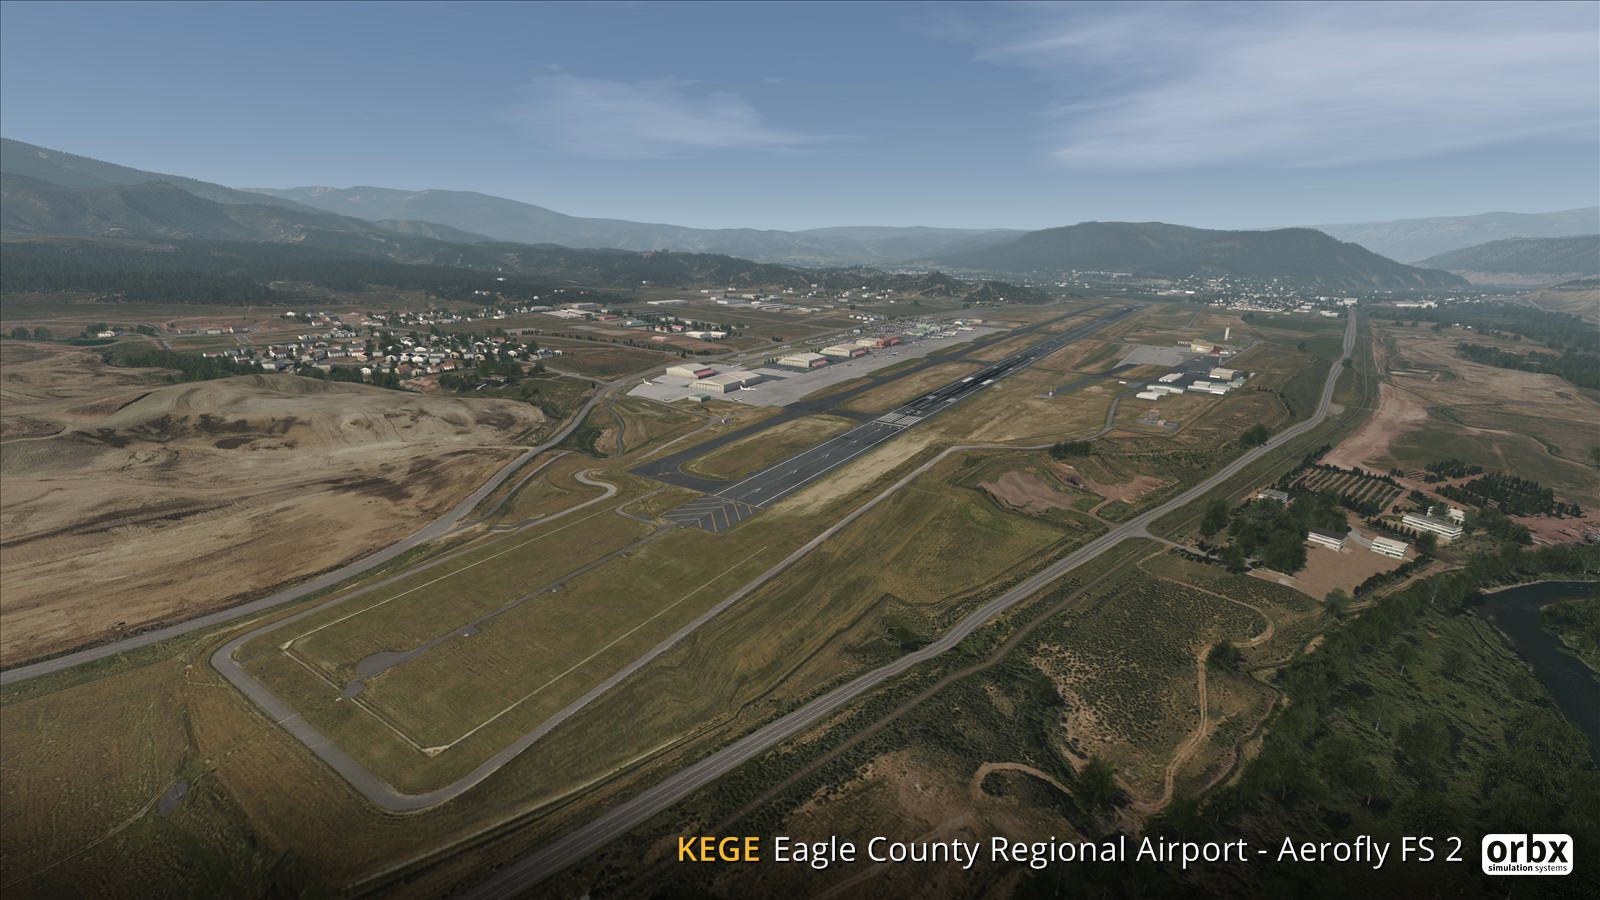 Eagle County Kege Aeroflyfs2 4